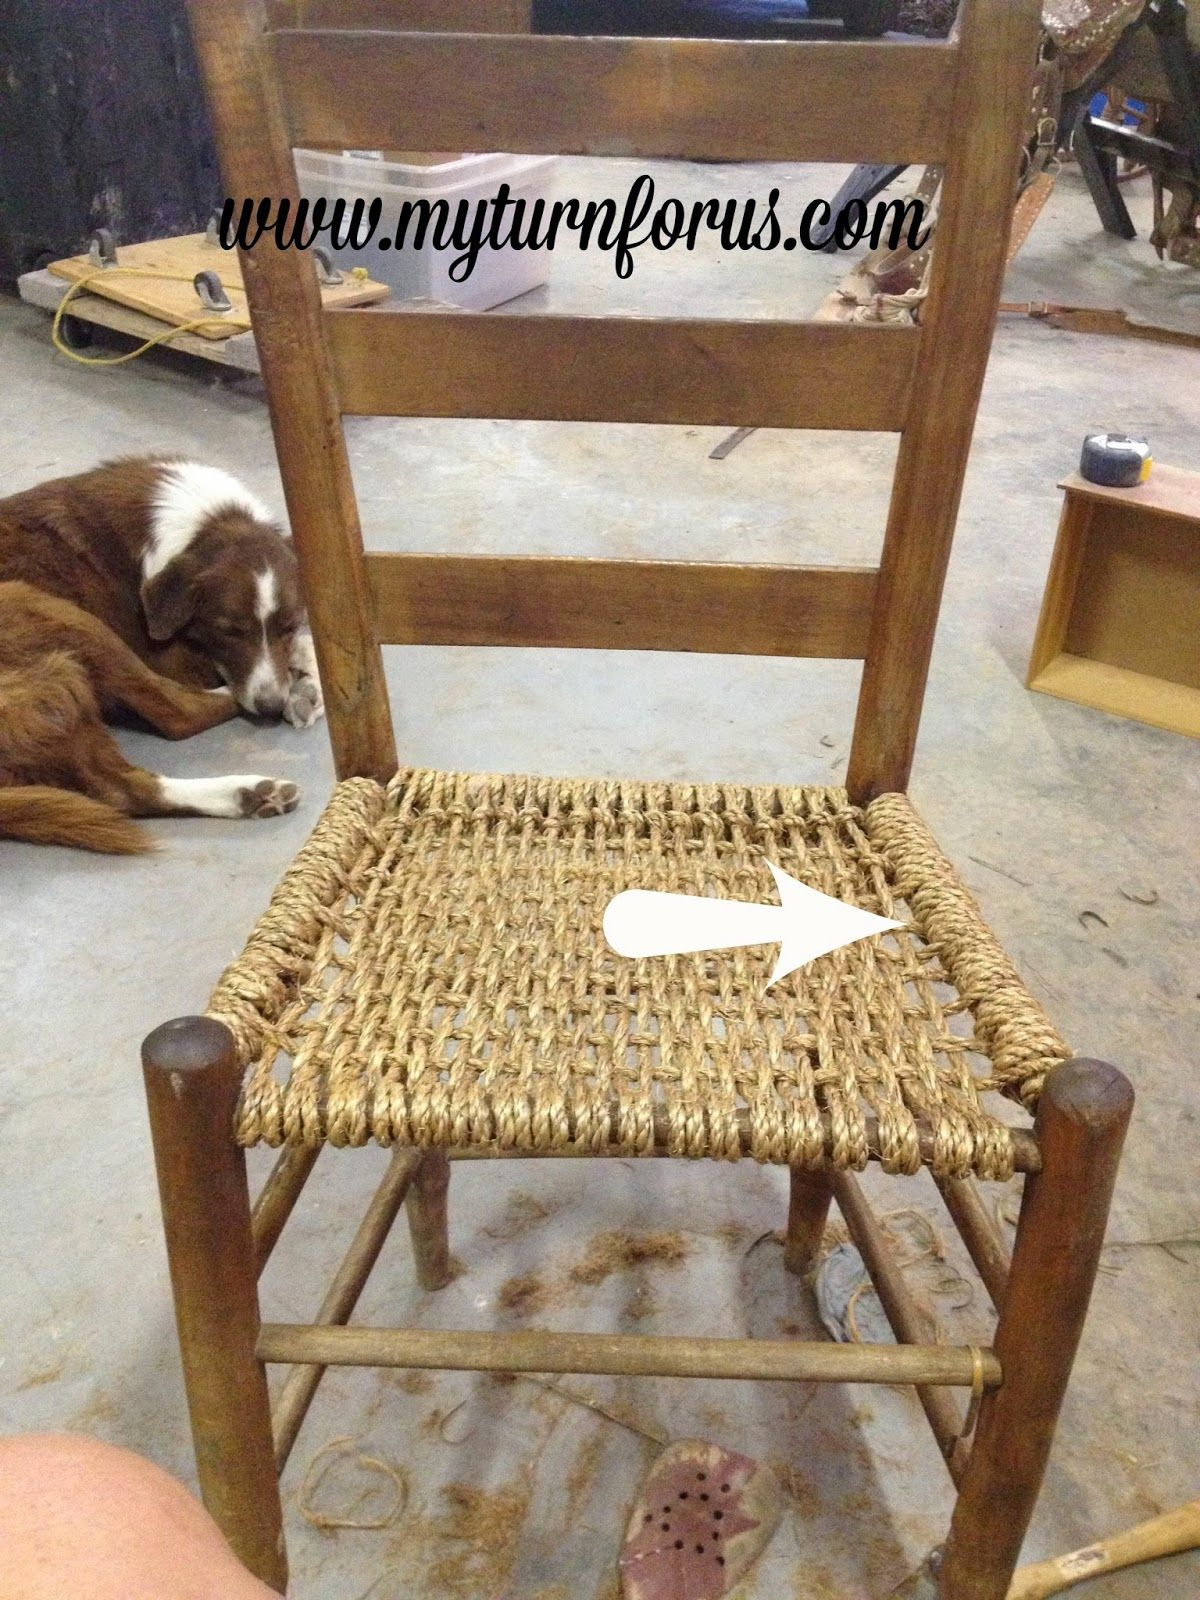 Rope Bottom Chair Wooden Chairs For Kitchen My Turn Us Or Hemp Bottomed Home Diy